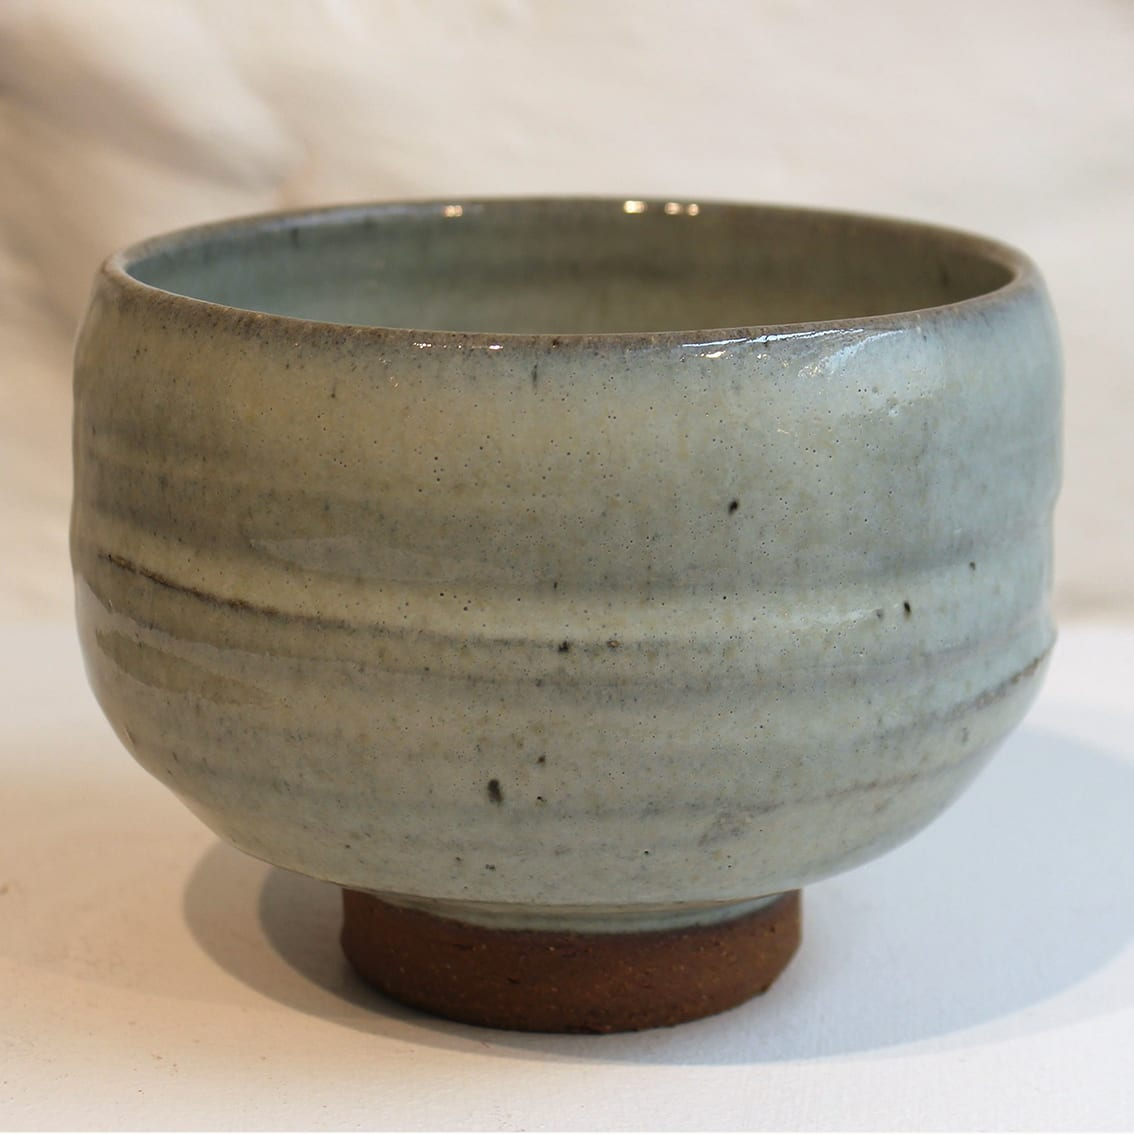 """<span class=""""link fancybox-details-link""""><a href=""""/artists/200-matthew-tyas/works/5456-matthew-tyas-nuka-chawan-bowl-2018/"""">View Detail Page</a></span><div class=""""artist""""><strong>Matthew Tyas</strong></div> <div class=""""title""""><em>Nuka Chawan Bowl</em>, 2018</div> <div class=""""signed_and_dated"""">stamped by the artist</div> <div class=""""medium"""">glazed thrown stoneware</div><div class=""""copyright_line"""">Copyright The Artist</div>"""